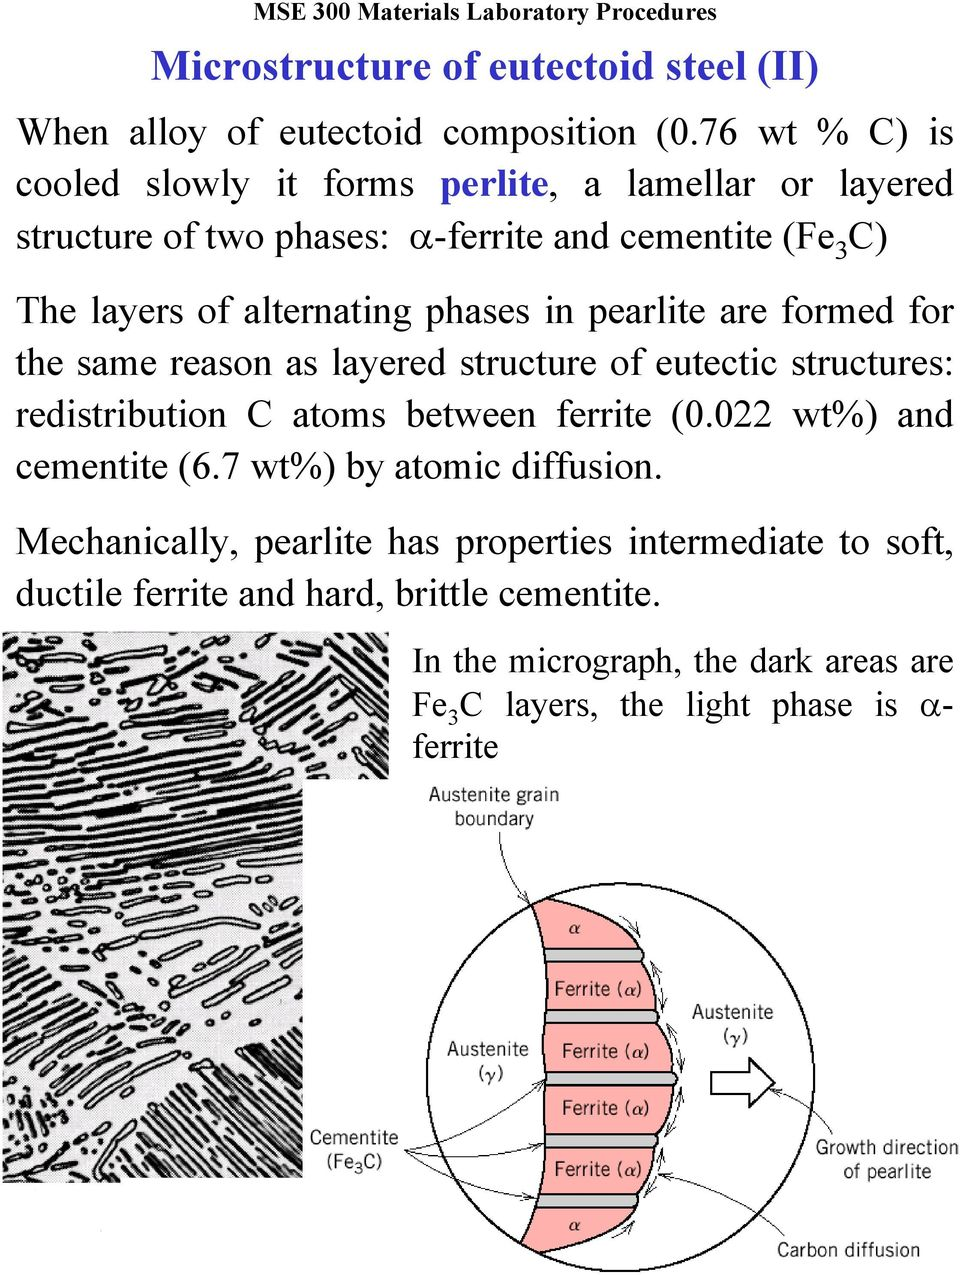 pearlite are formed for the same reason as layered structure of eutectic structures: redistribution C atoms between ferrite (0.022 wt%) and cementite (6.